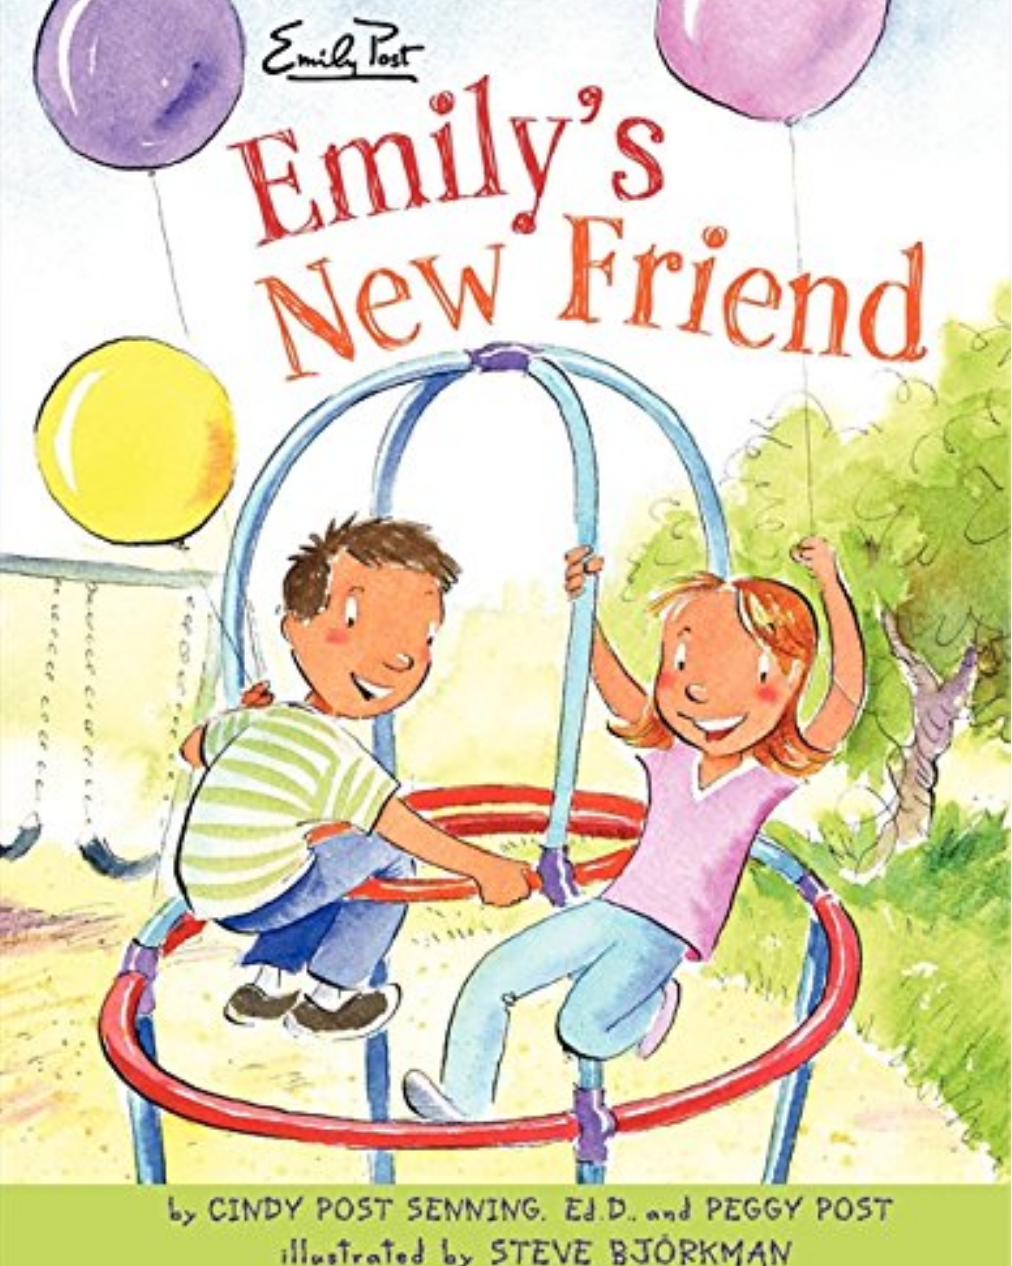 Emily's New Friend book cover image showing title and young emily playing at the playground with a friend holding balloons